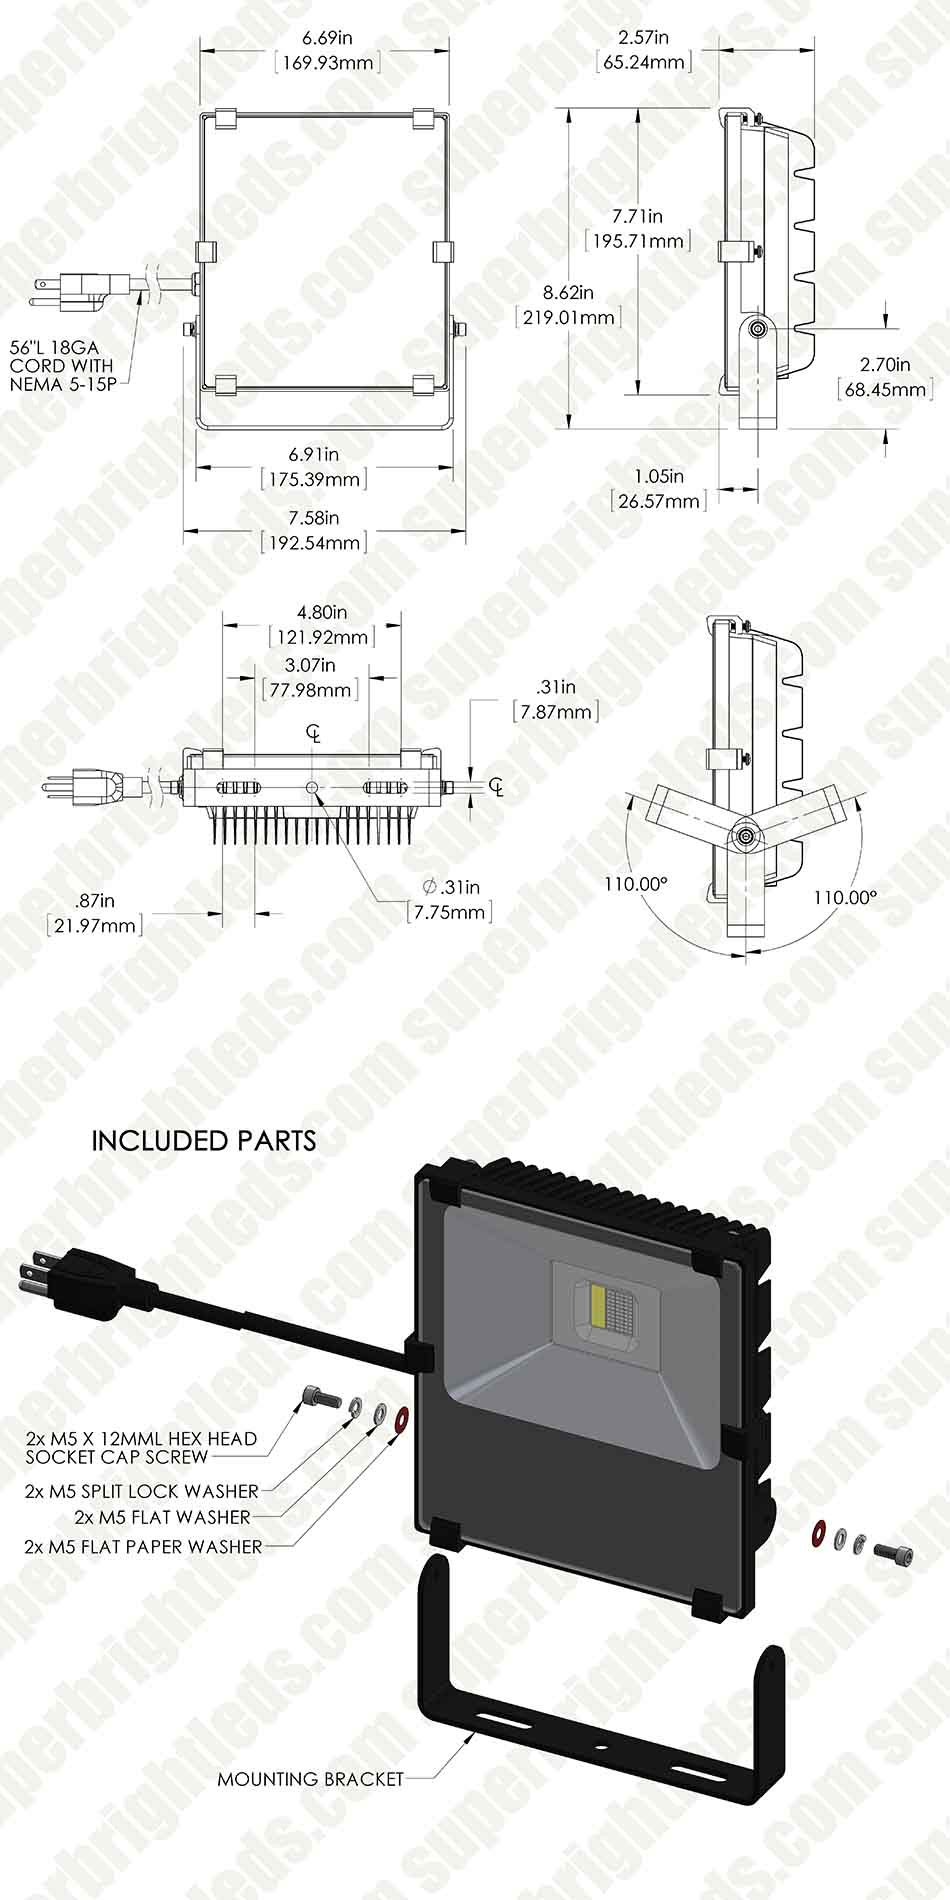 30 Watt RGB LED Flood Light Fixture (TBD)